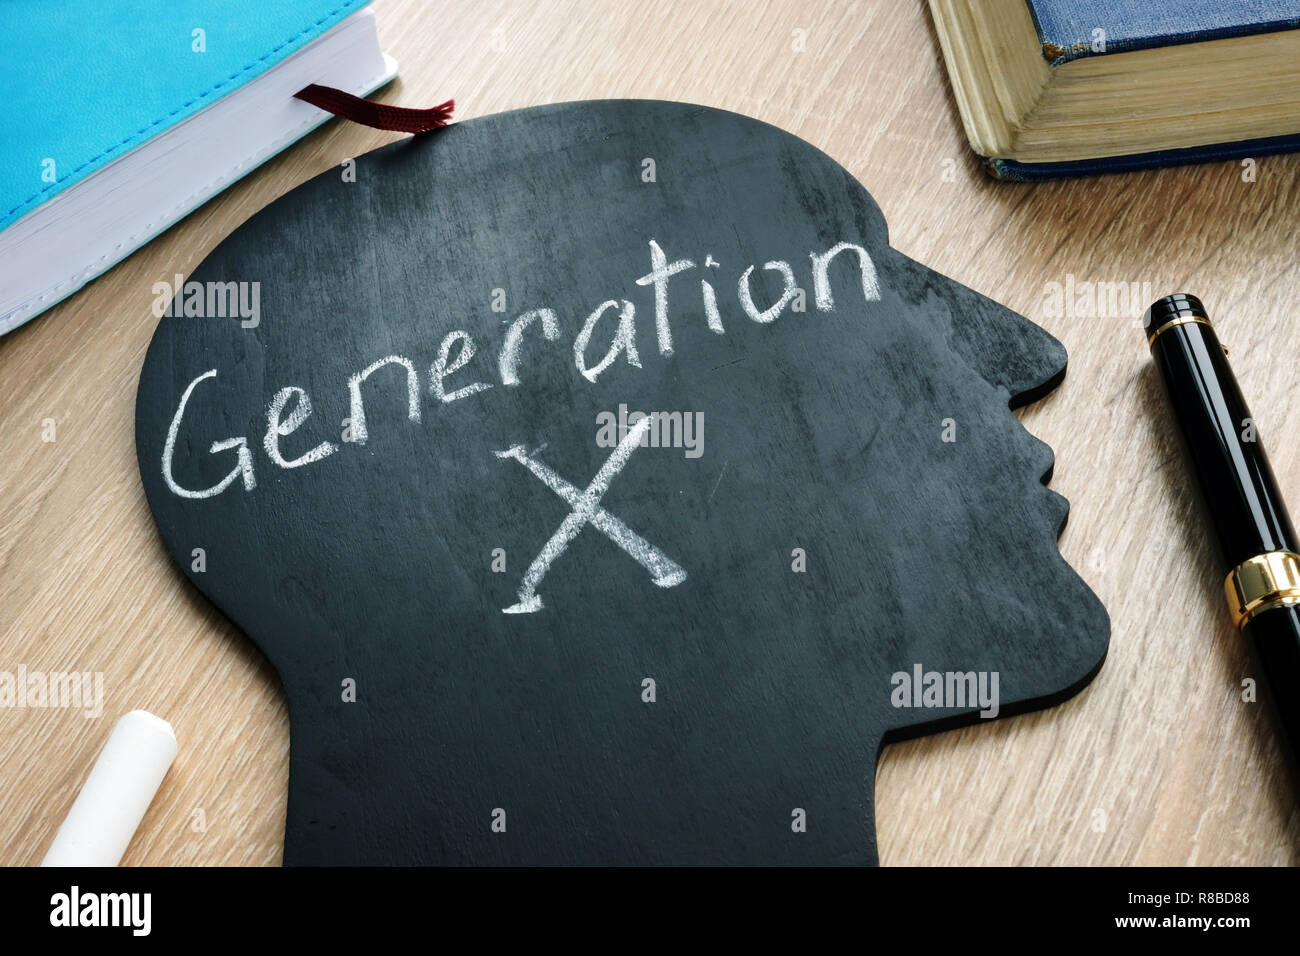 Generation x written on the silhouette of head. - Stock Image